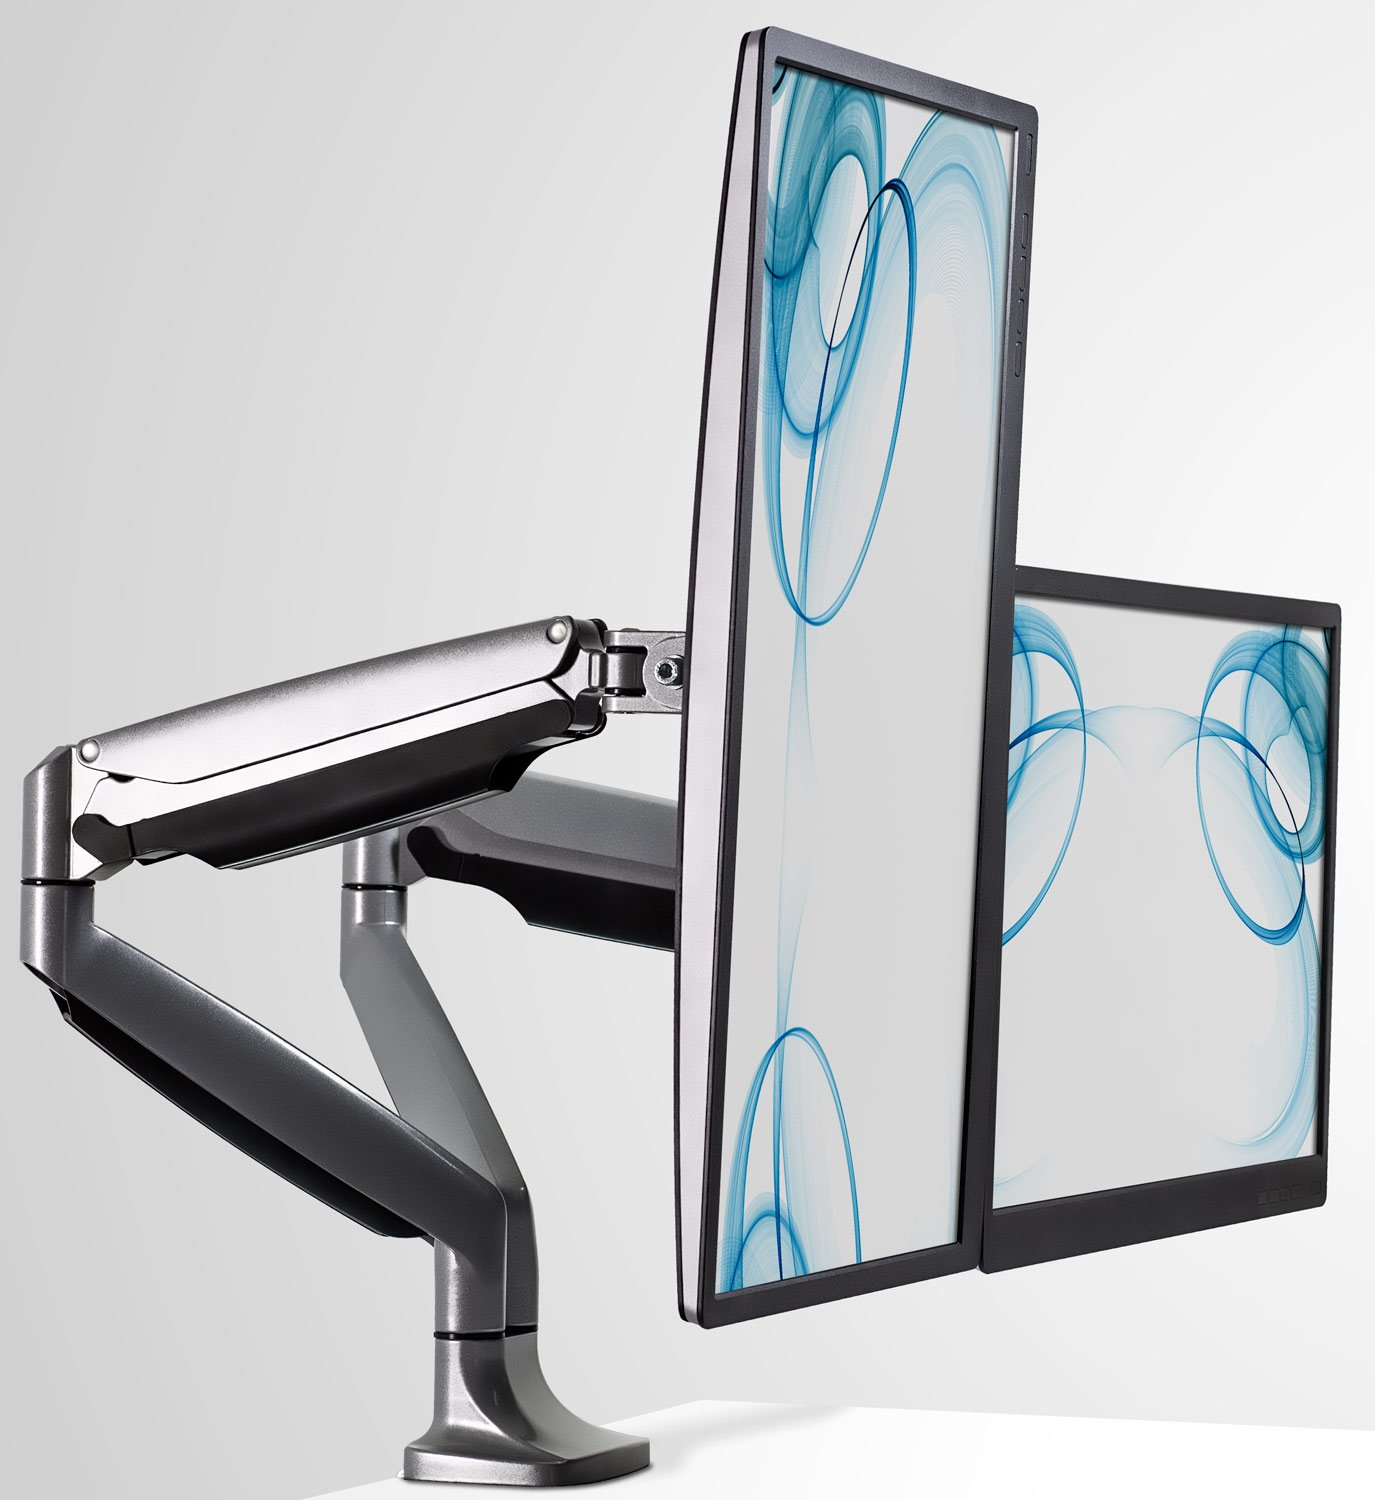 Mount It Monitor Desk Mount,Computer Monitor Stand,Height Adjustable Arm Fits Up To 32 Inch Screens,VESA 75x75and100x100,20 Lb Capacity,Black (MI-1772)(Dual Monitor,Silver)